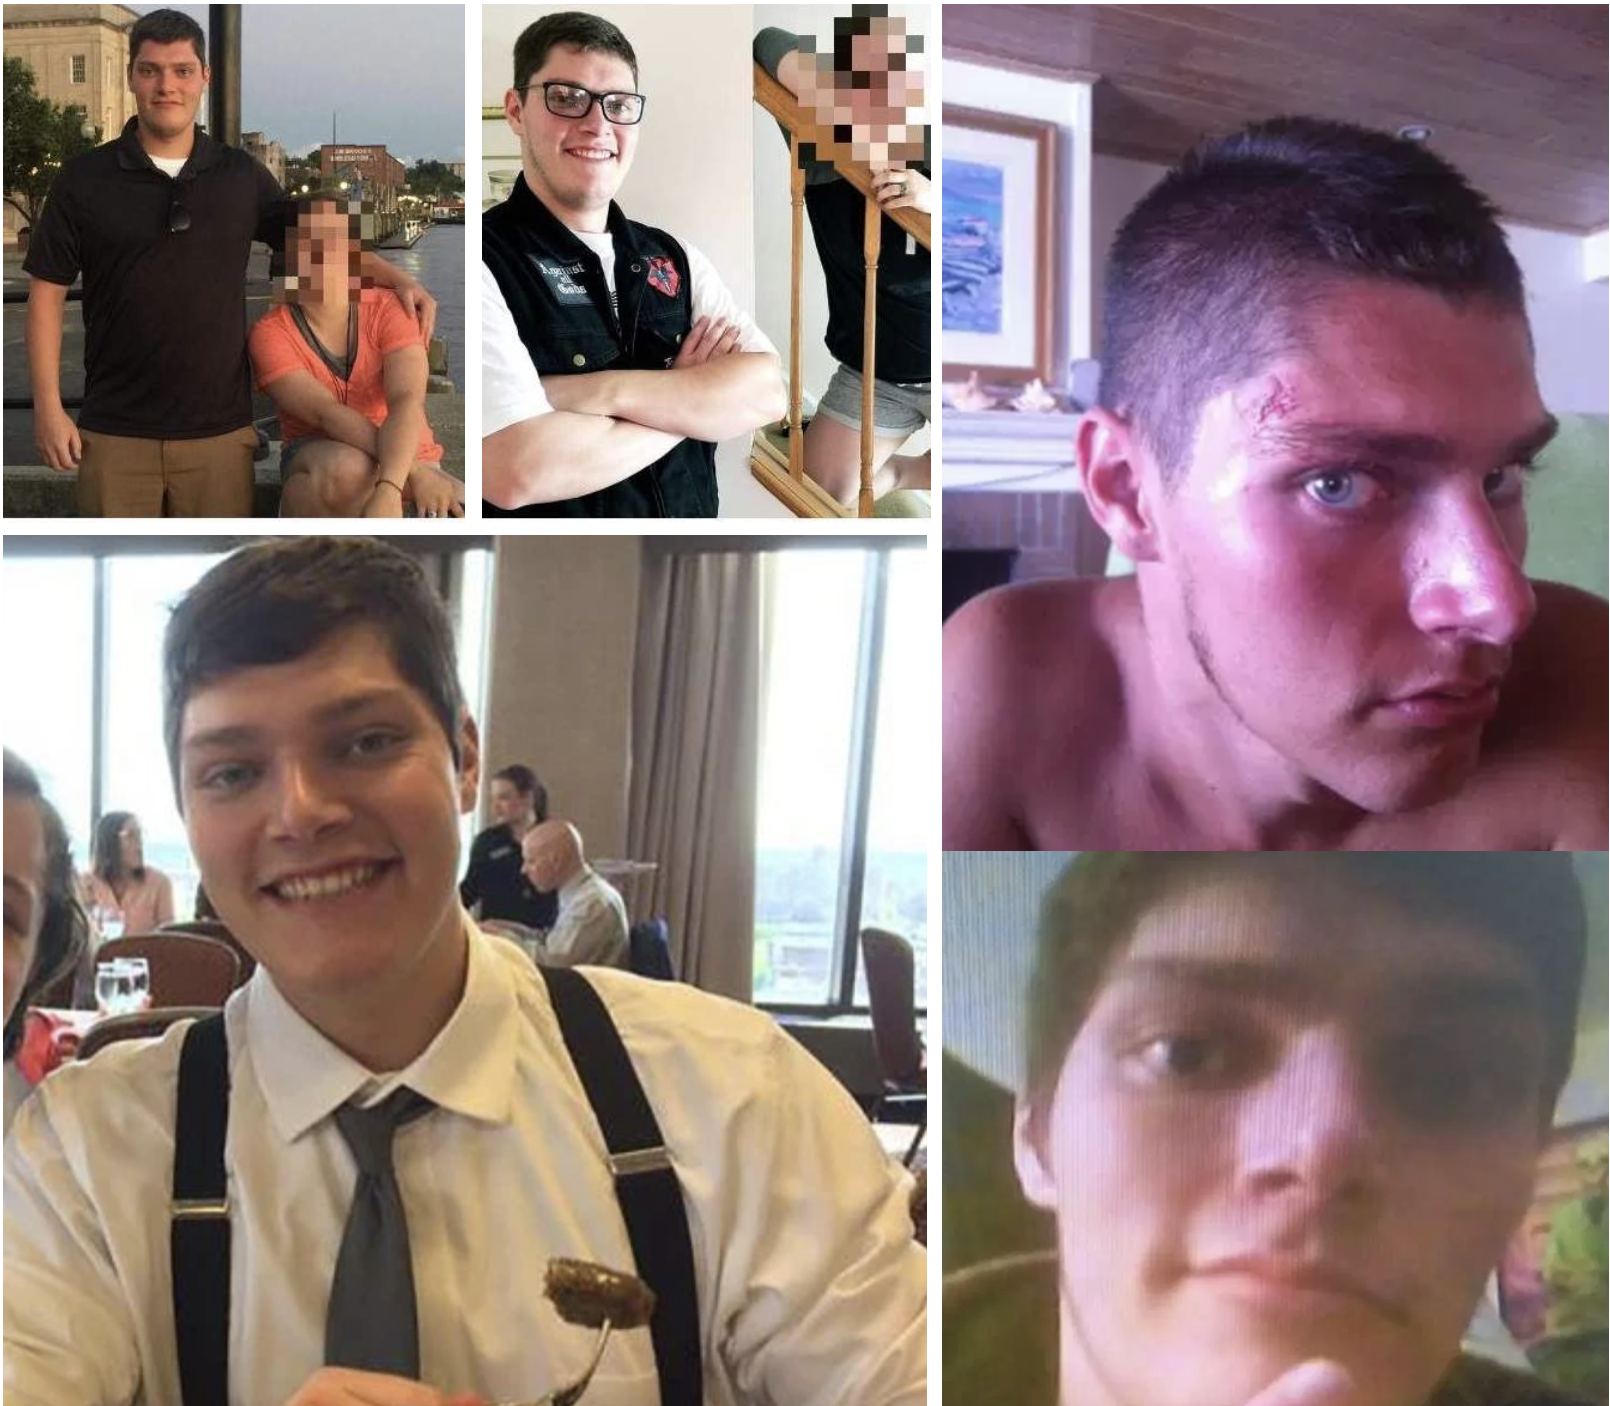 Pictures, images of connor betts Ohio Dayton Mass Shooter